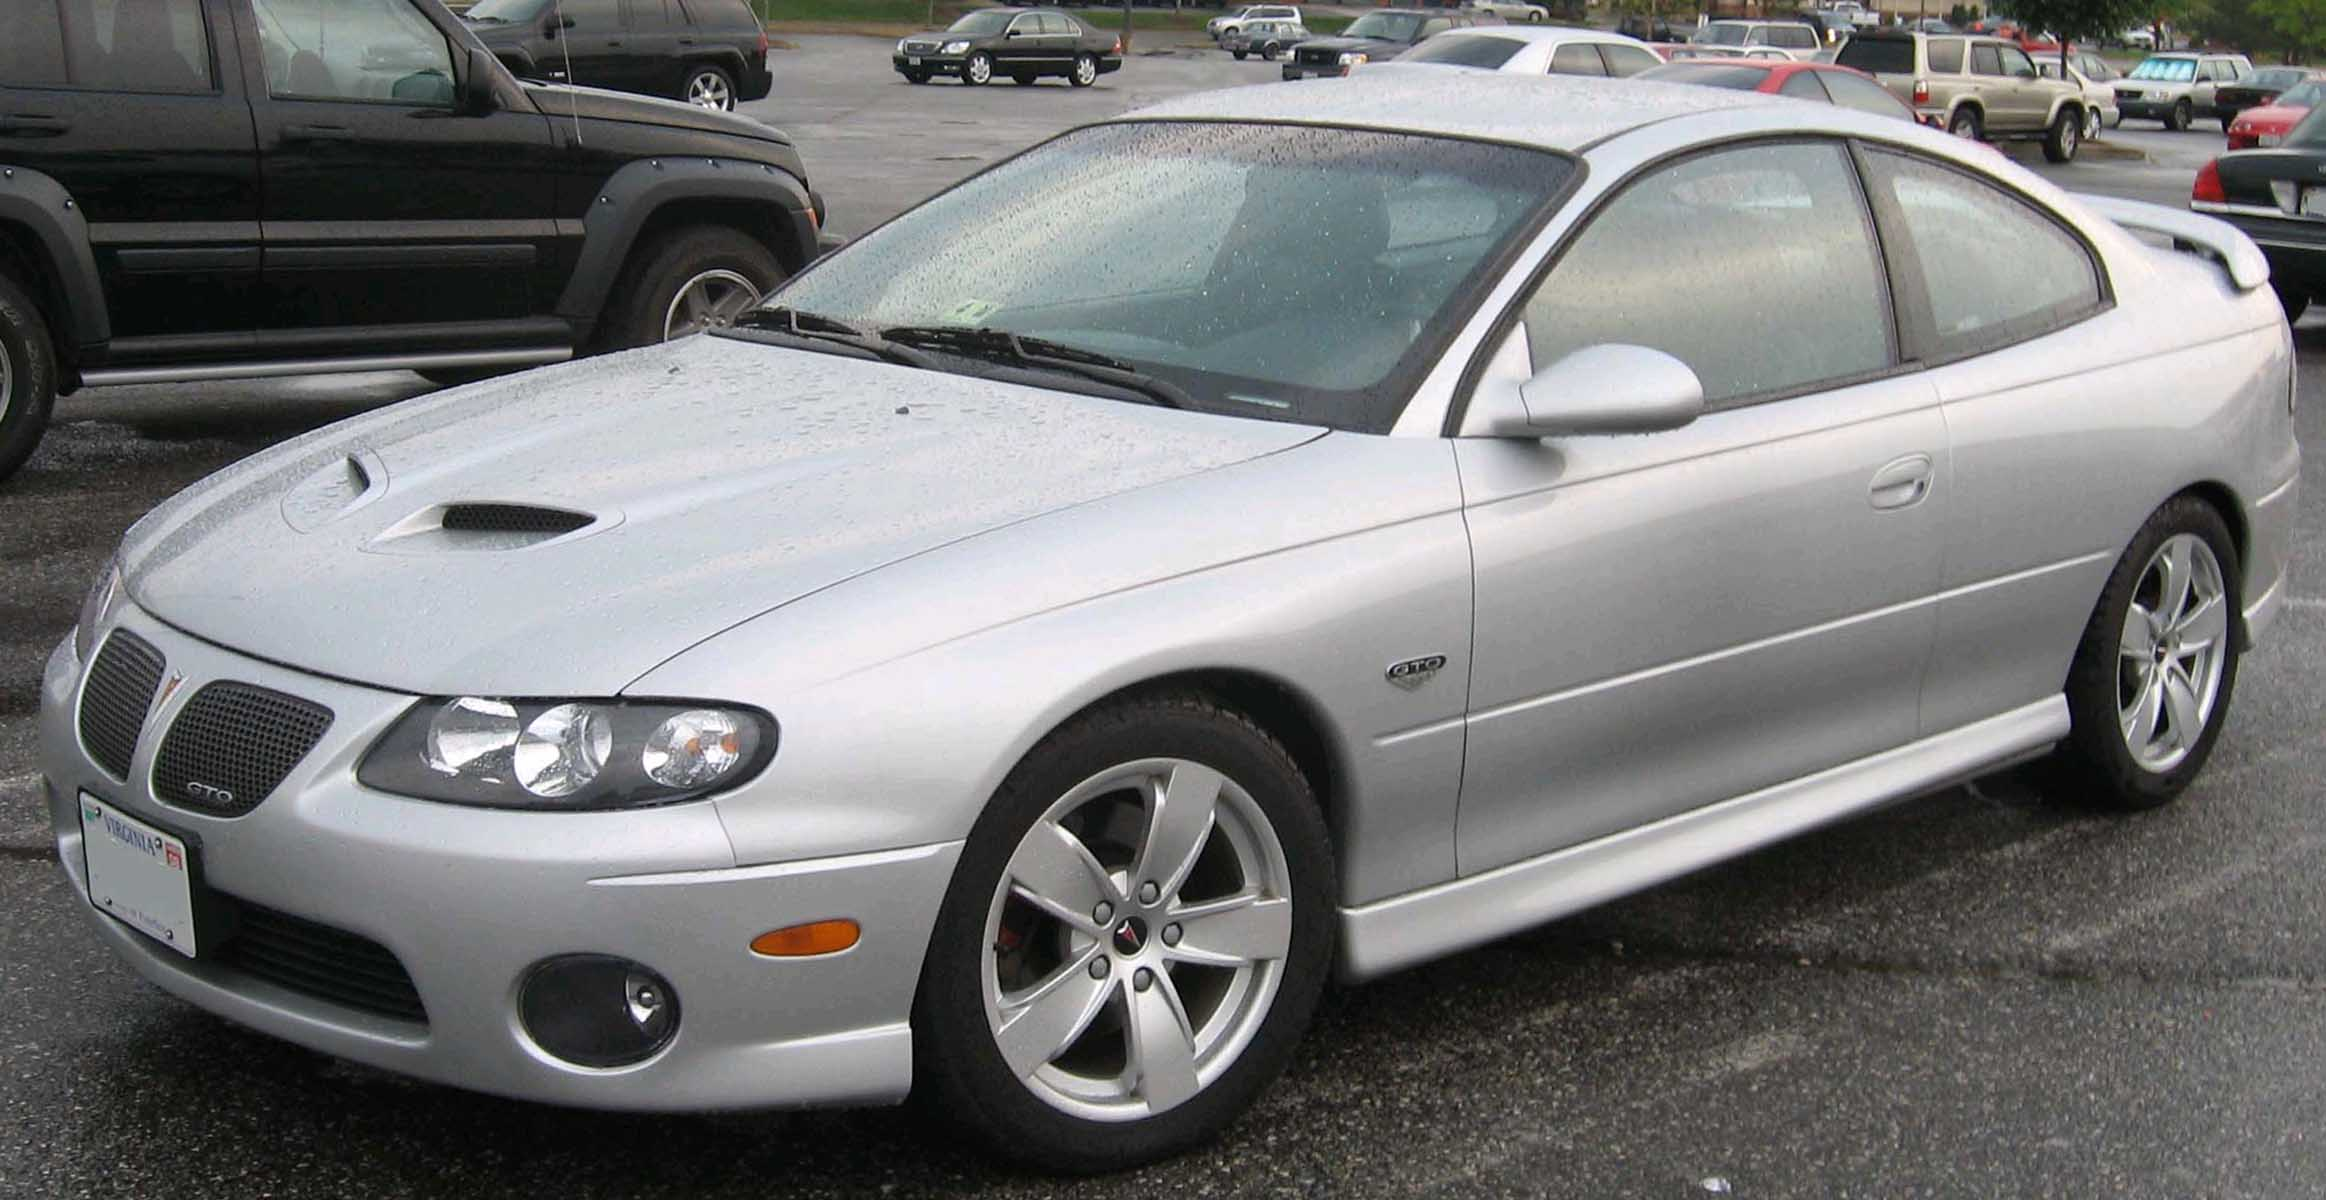 2005 Pontiac Gto – pictures, information and specs - Auto-Database.com